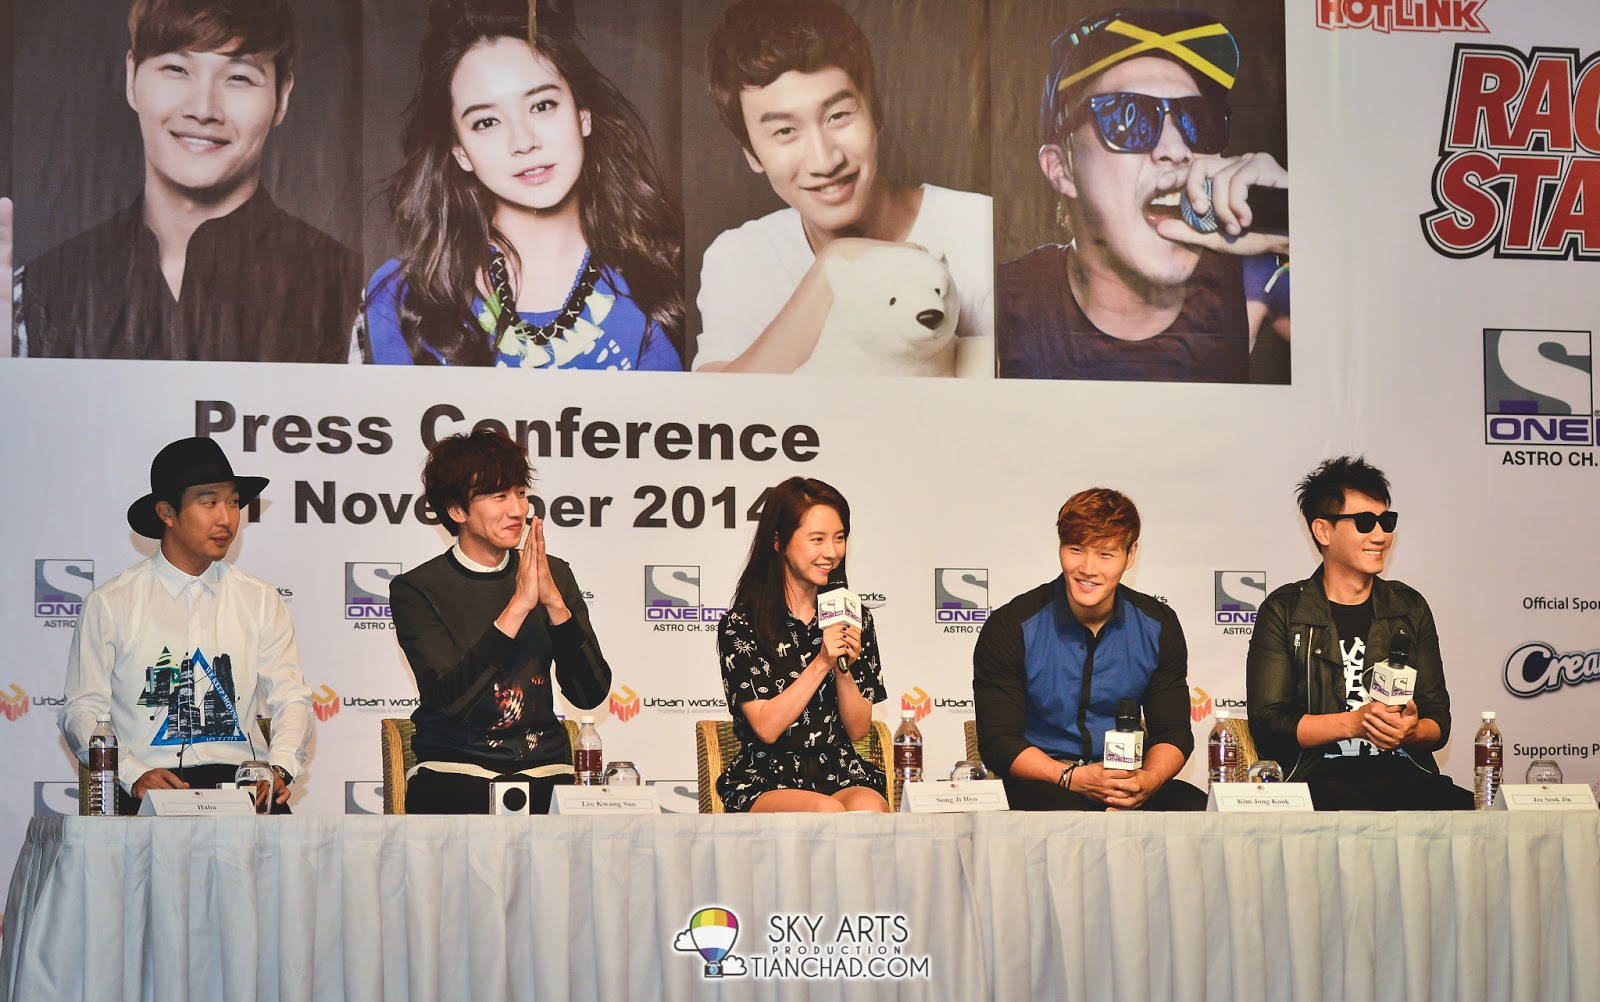 Photo] Running Man #RaceStartMY Live in Malaysia - Press Conference